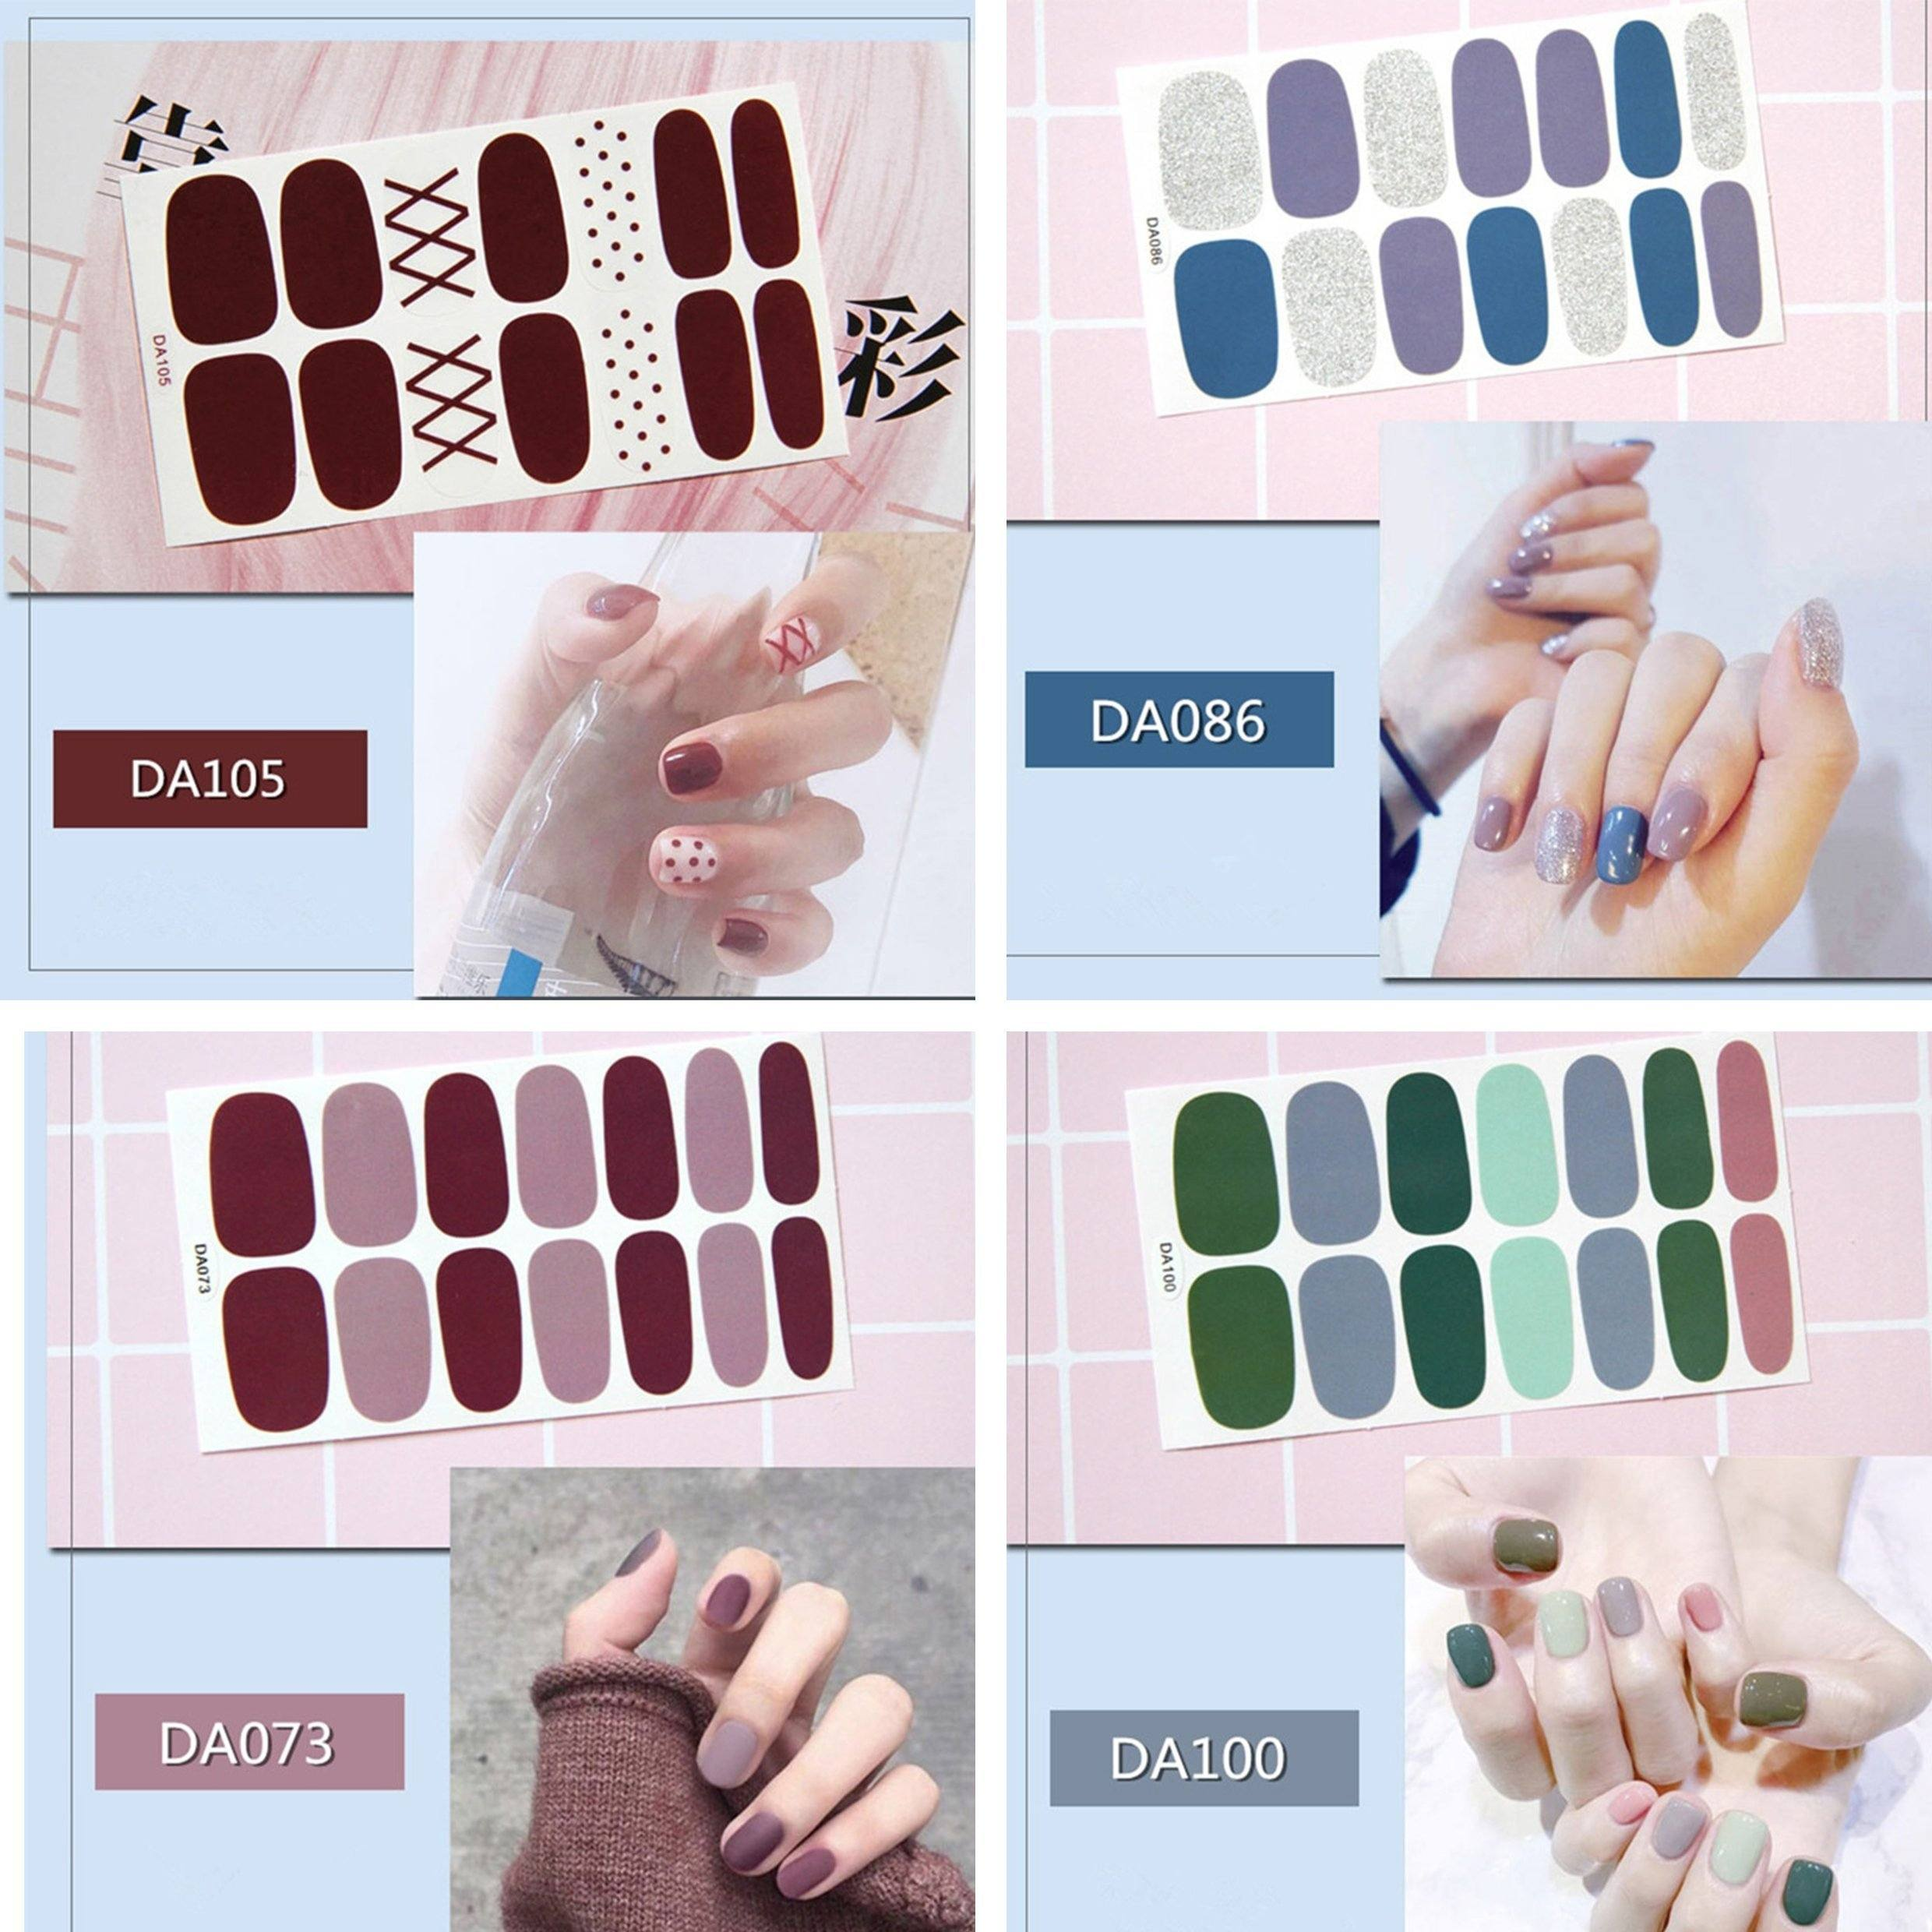 Salon Quality Nail Art Wraps - 56 Tips Set/ 60 Tips Set